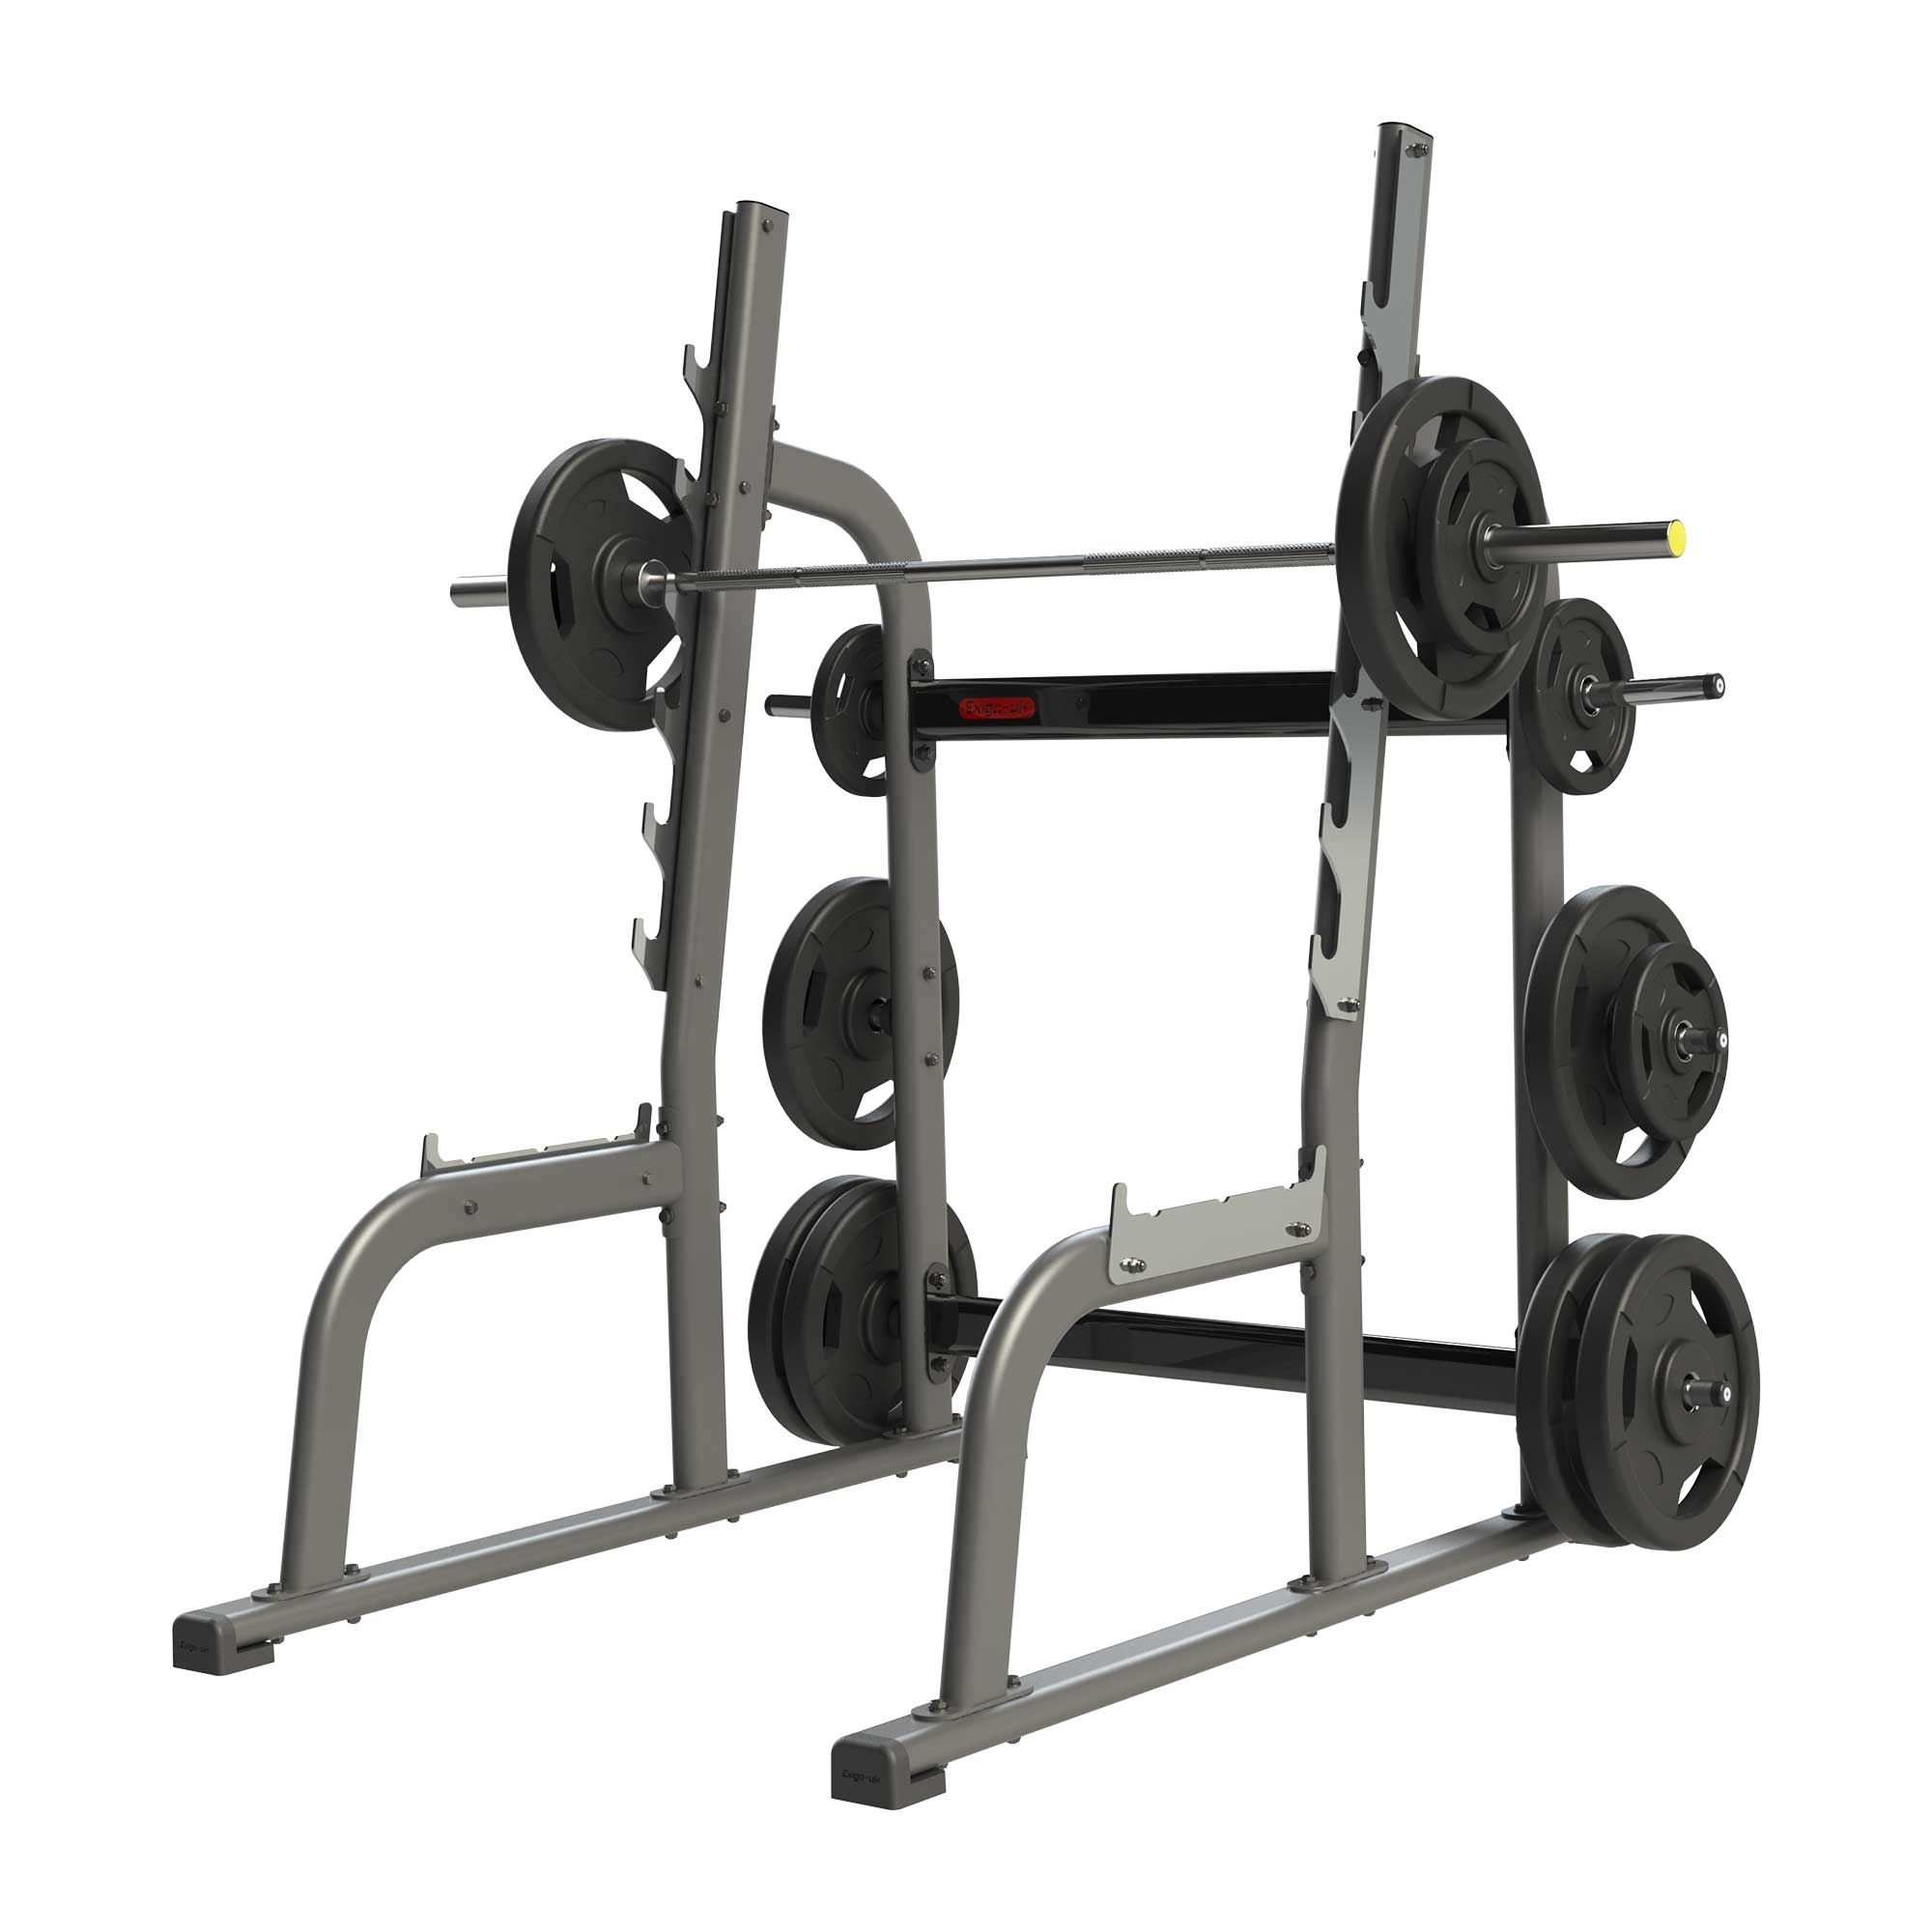 Exigo Olympic Squat Rack Buy Online At Physical Company